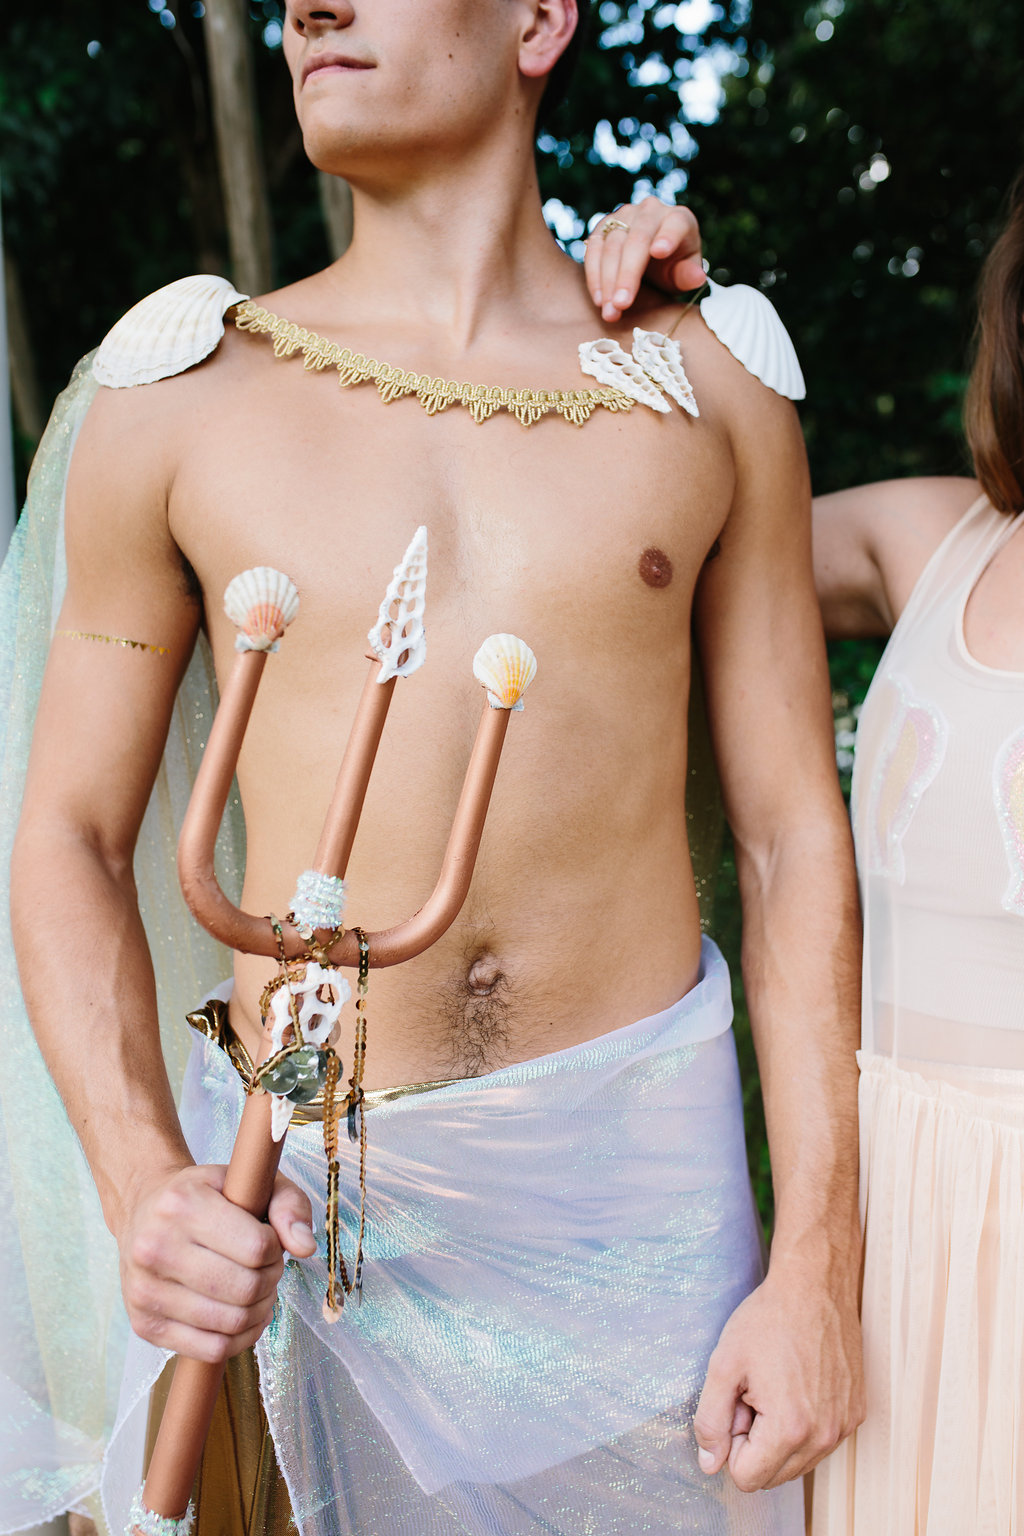 The Merman costume